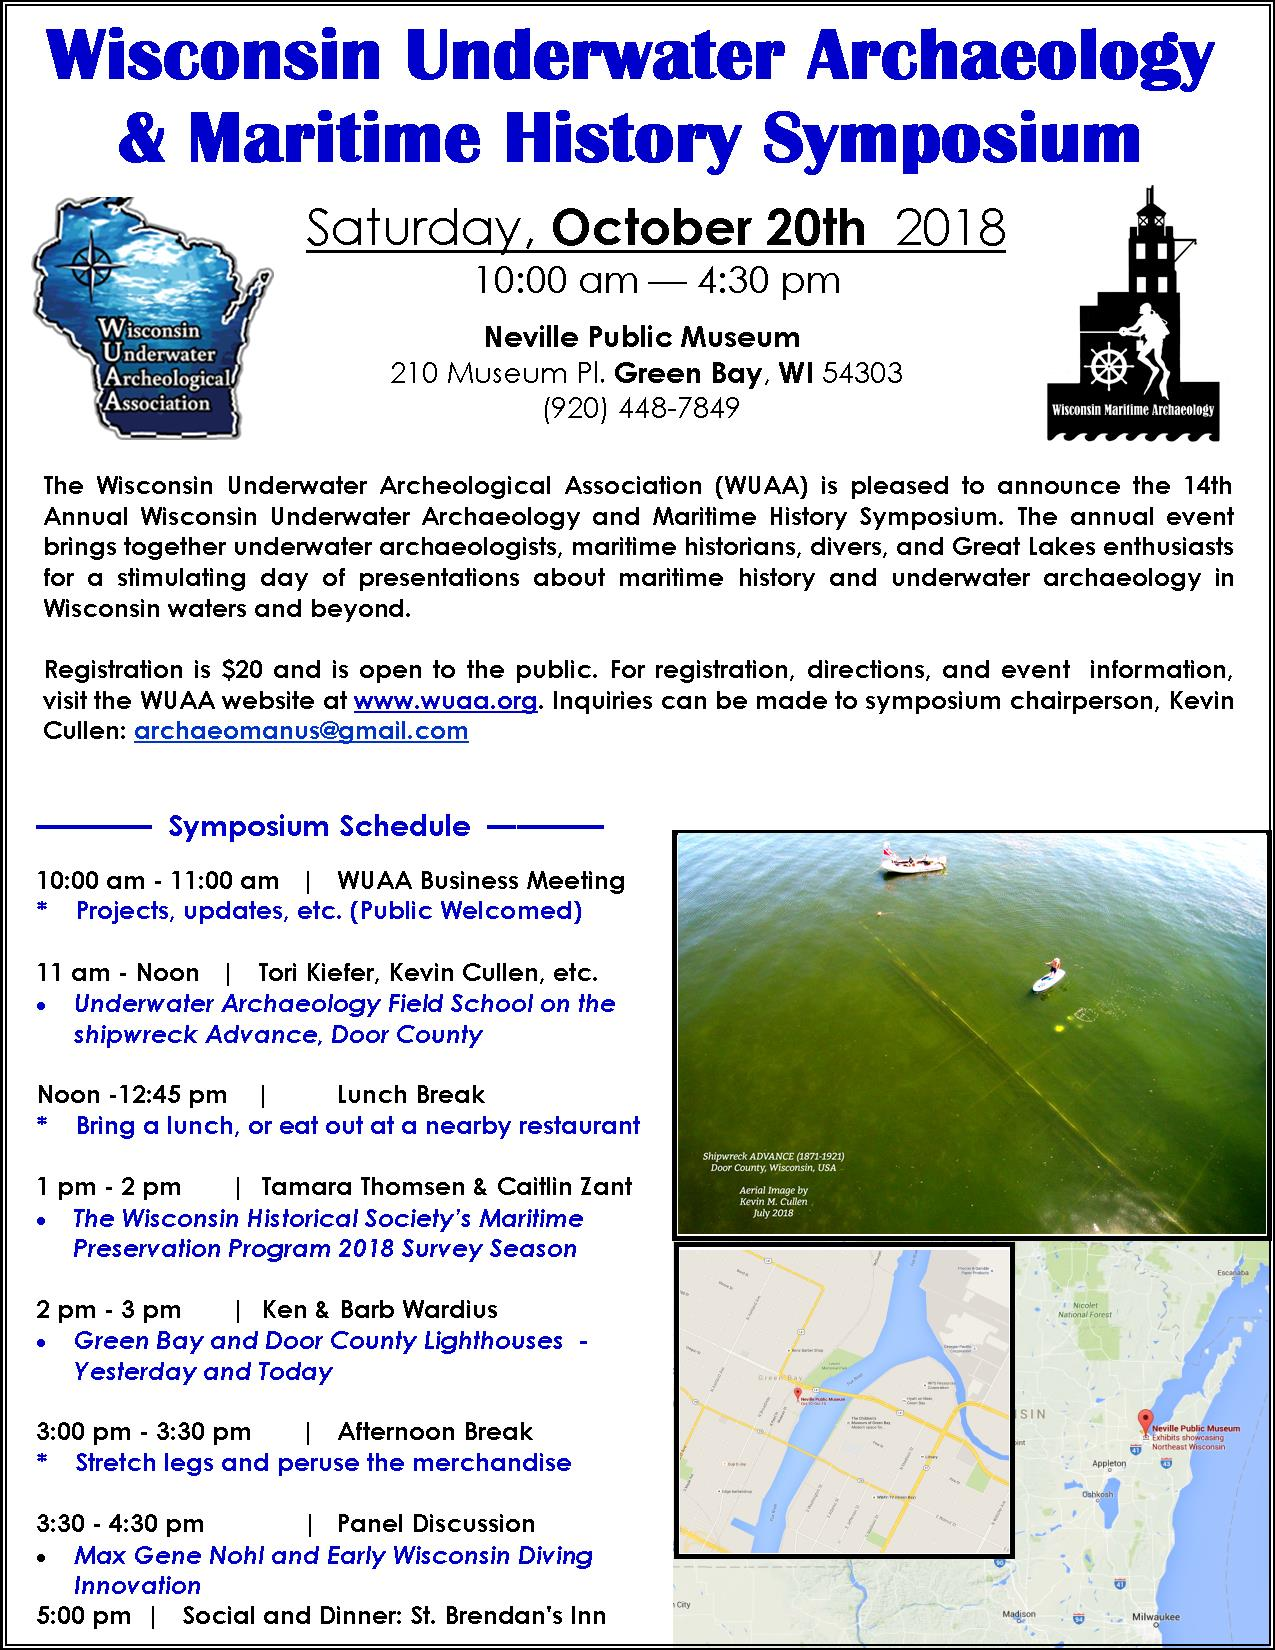 WUAA Symposium on Saturday October 20th